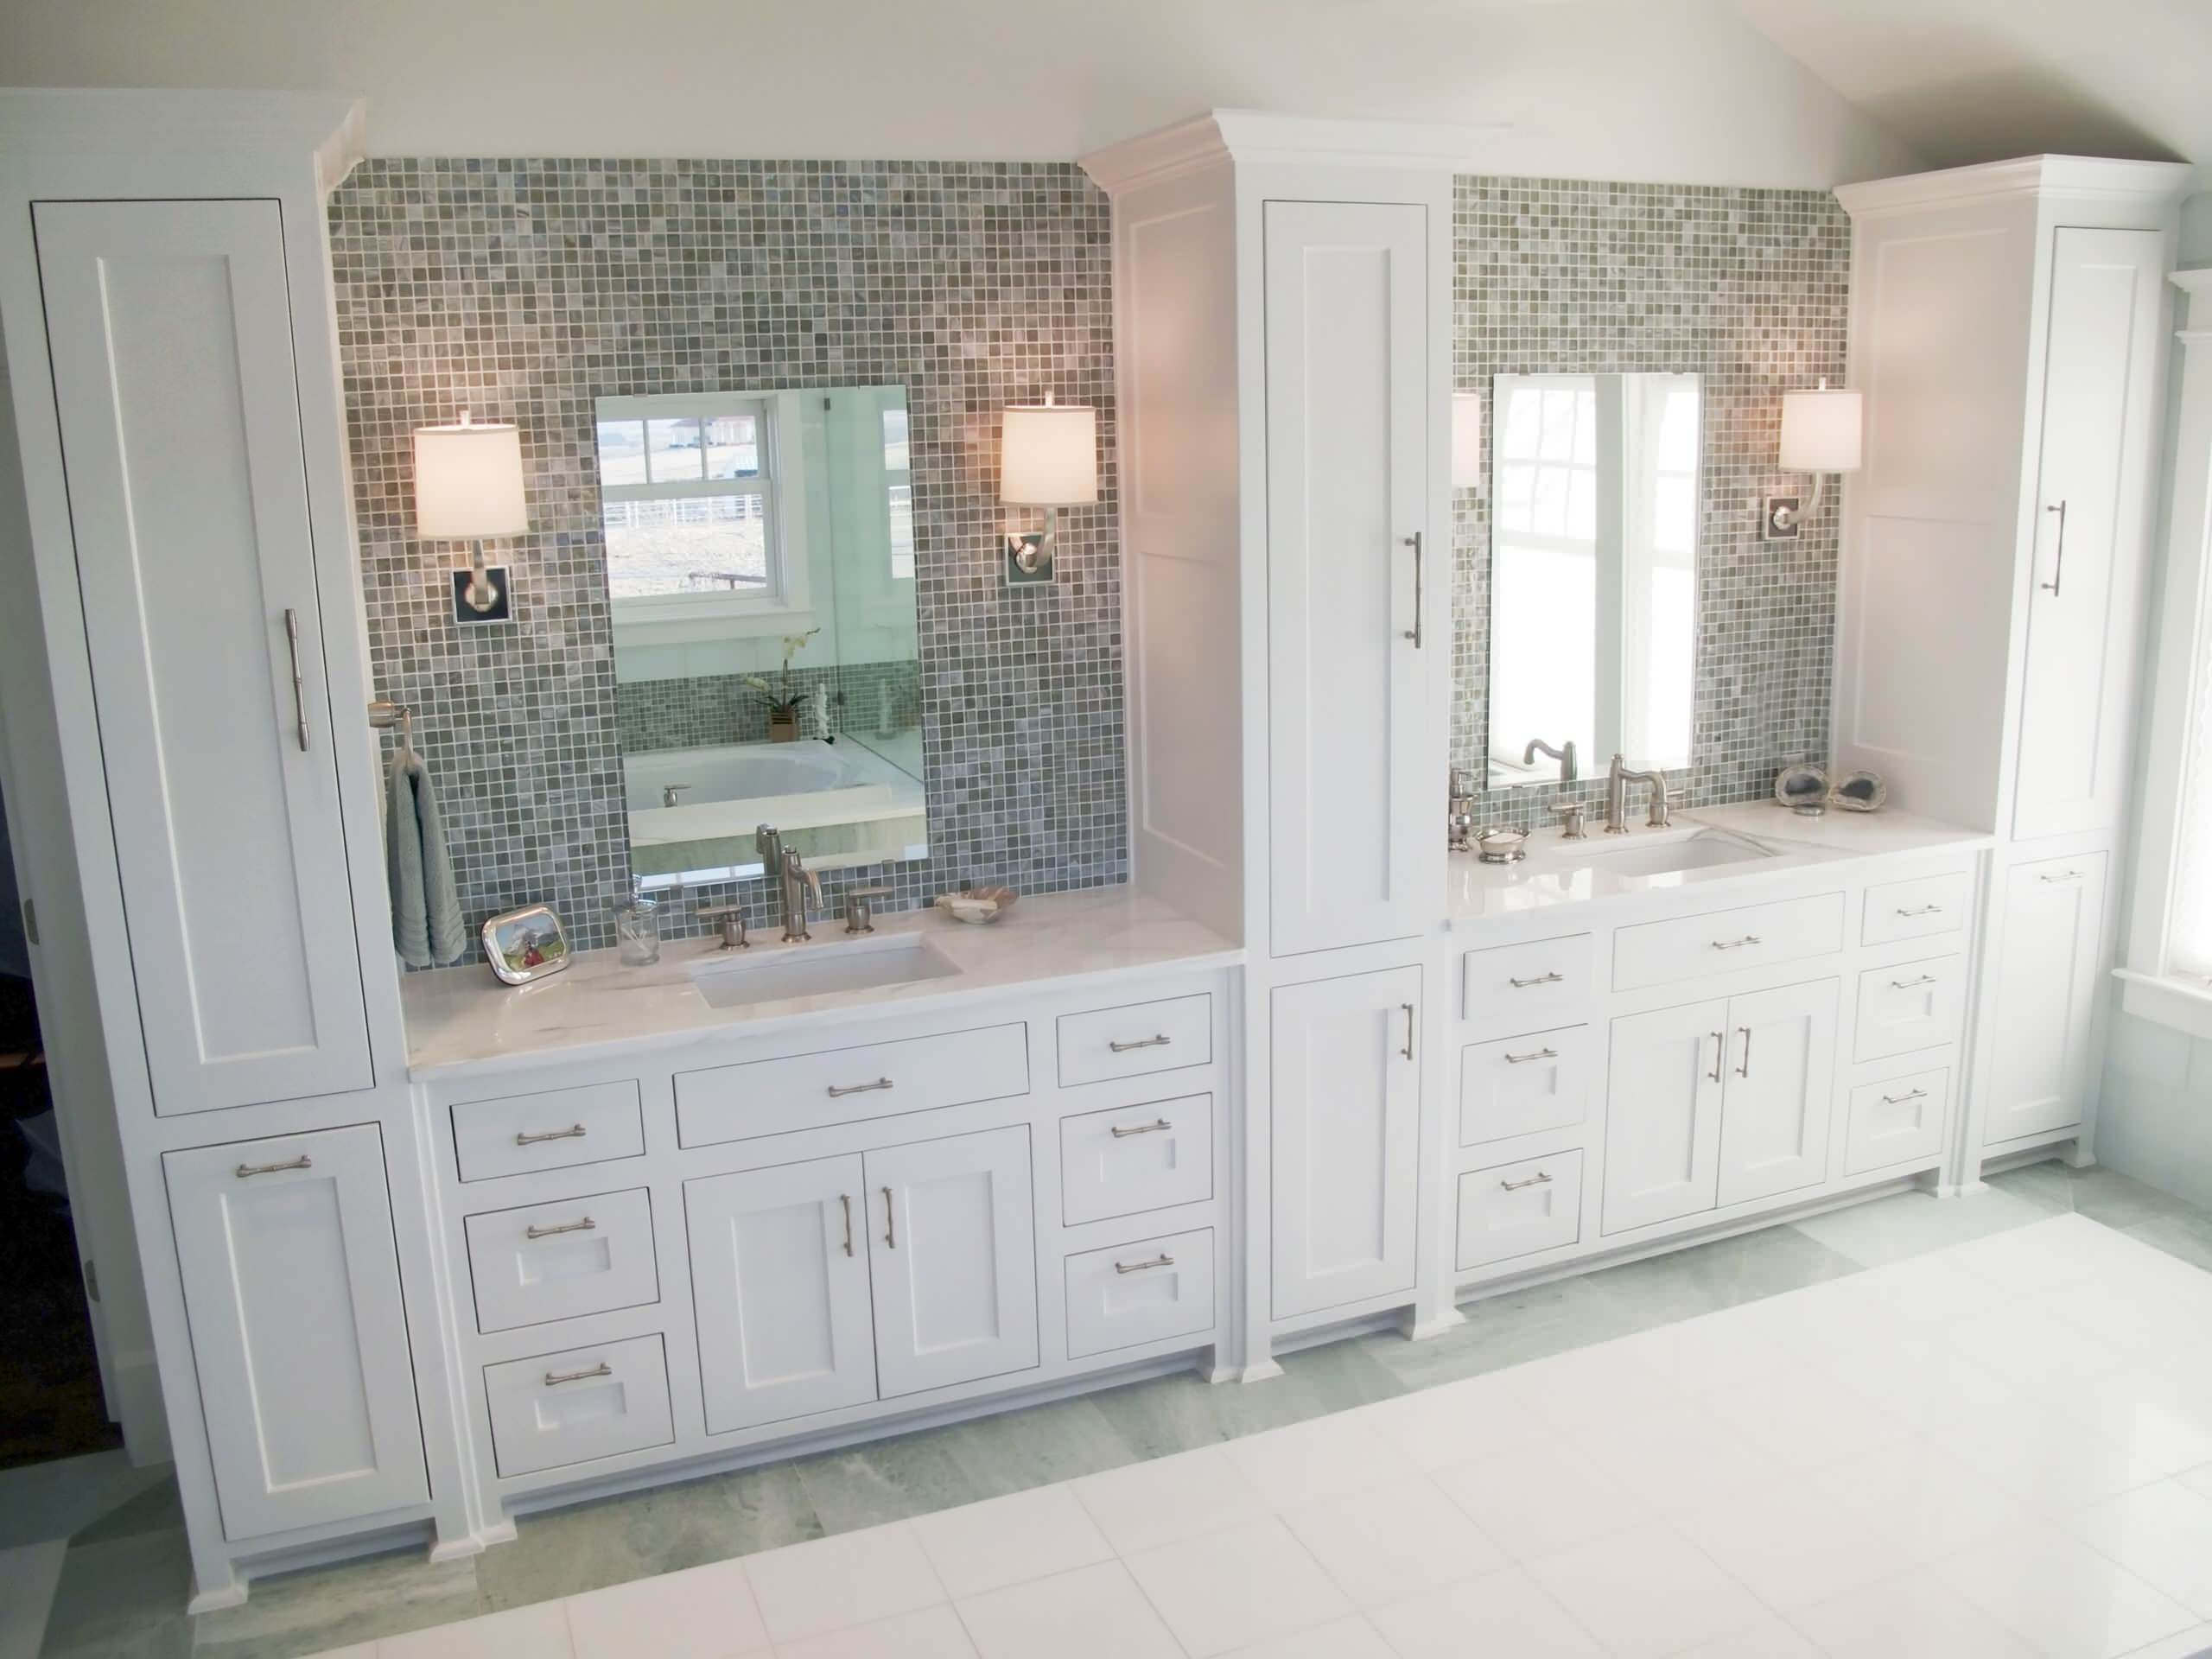 Double Sink Bathroom Vanity With Linen Tower Image Of Bathroom And Closet